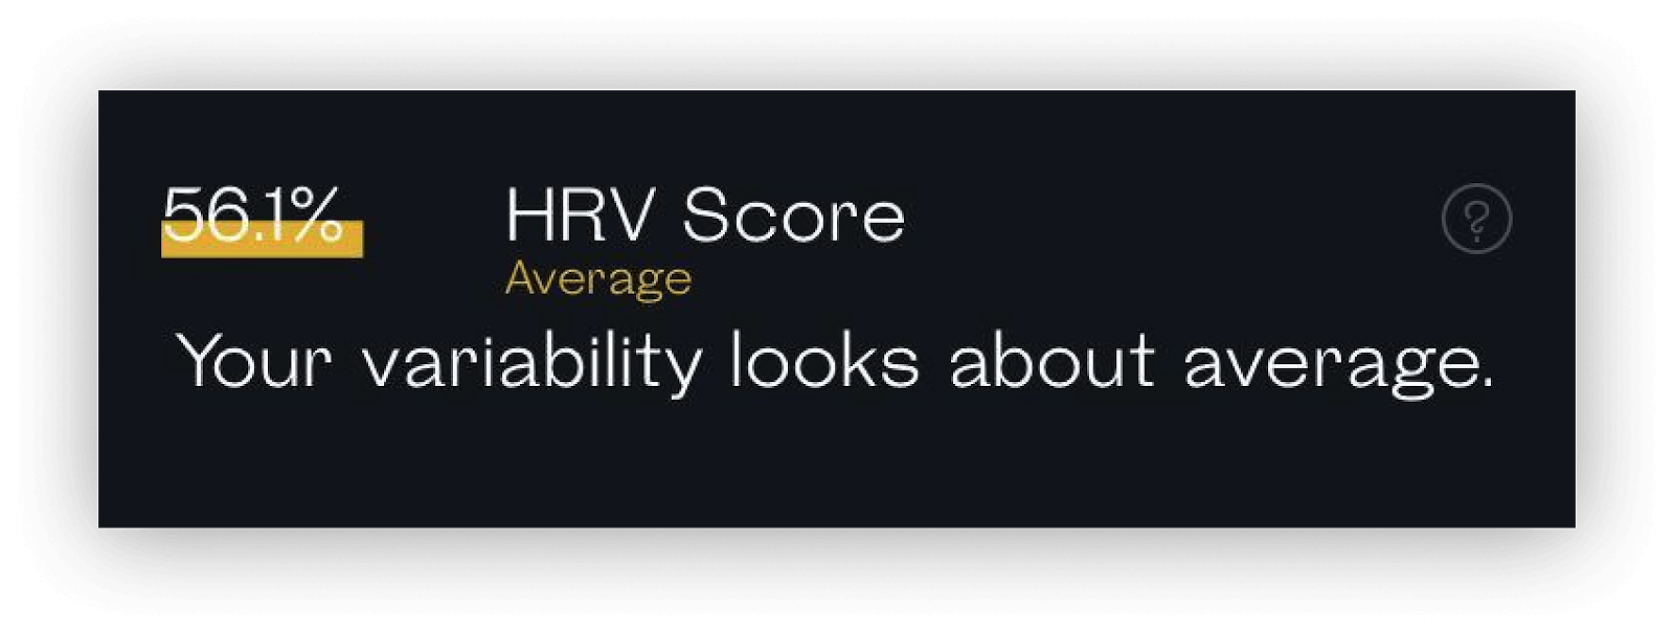 HRV score with 56.1% evaluation results and a readout telling variability looks about average